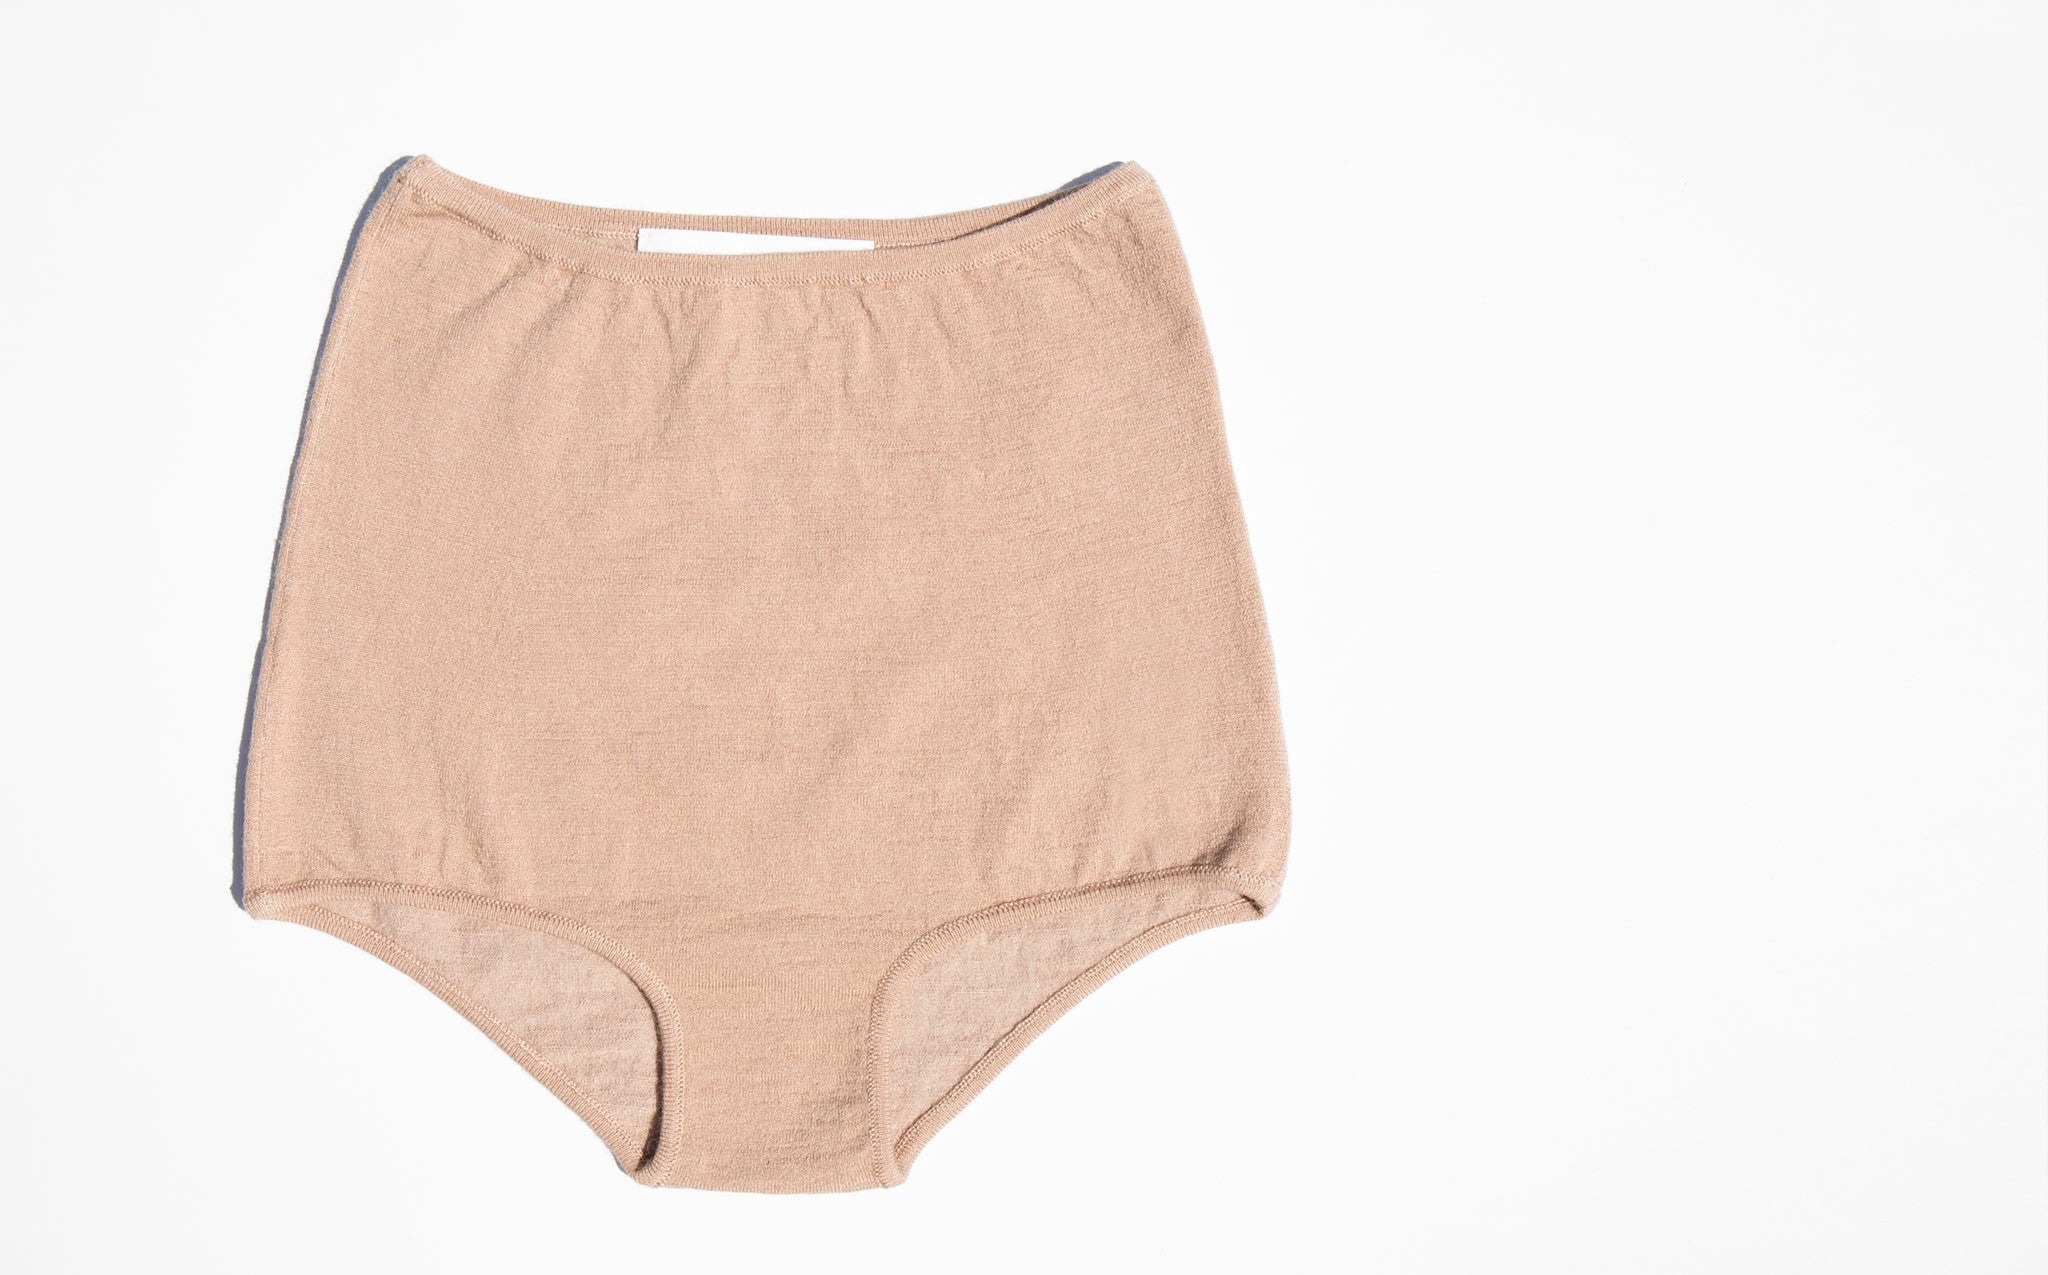 Hesperios Margot Rosebud High Waisted Undies